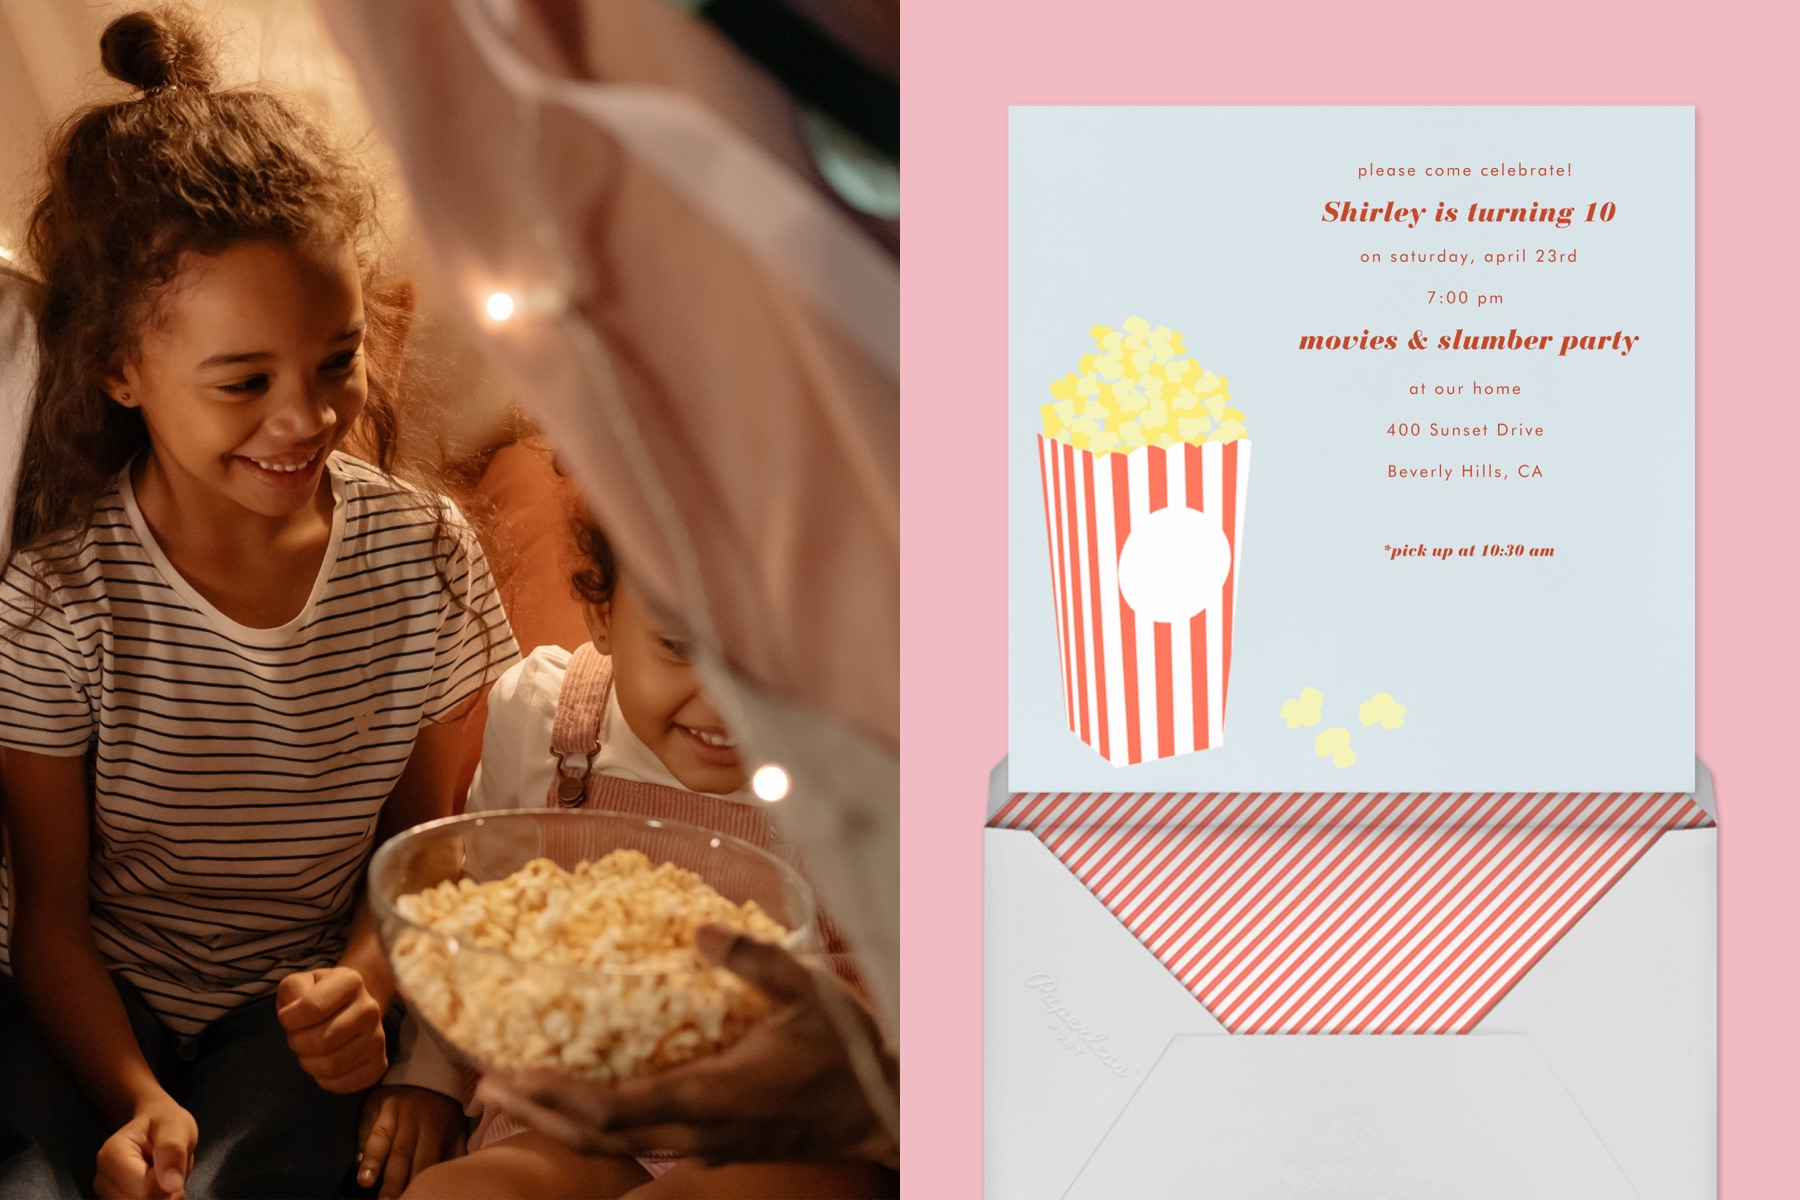 """Left: Children hold a bowl of popcorn. 